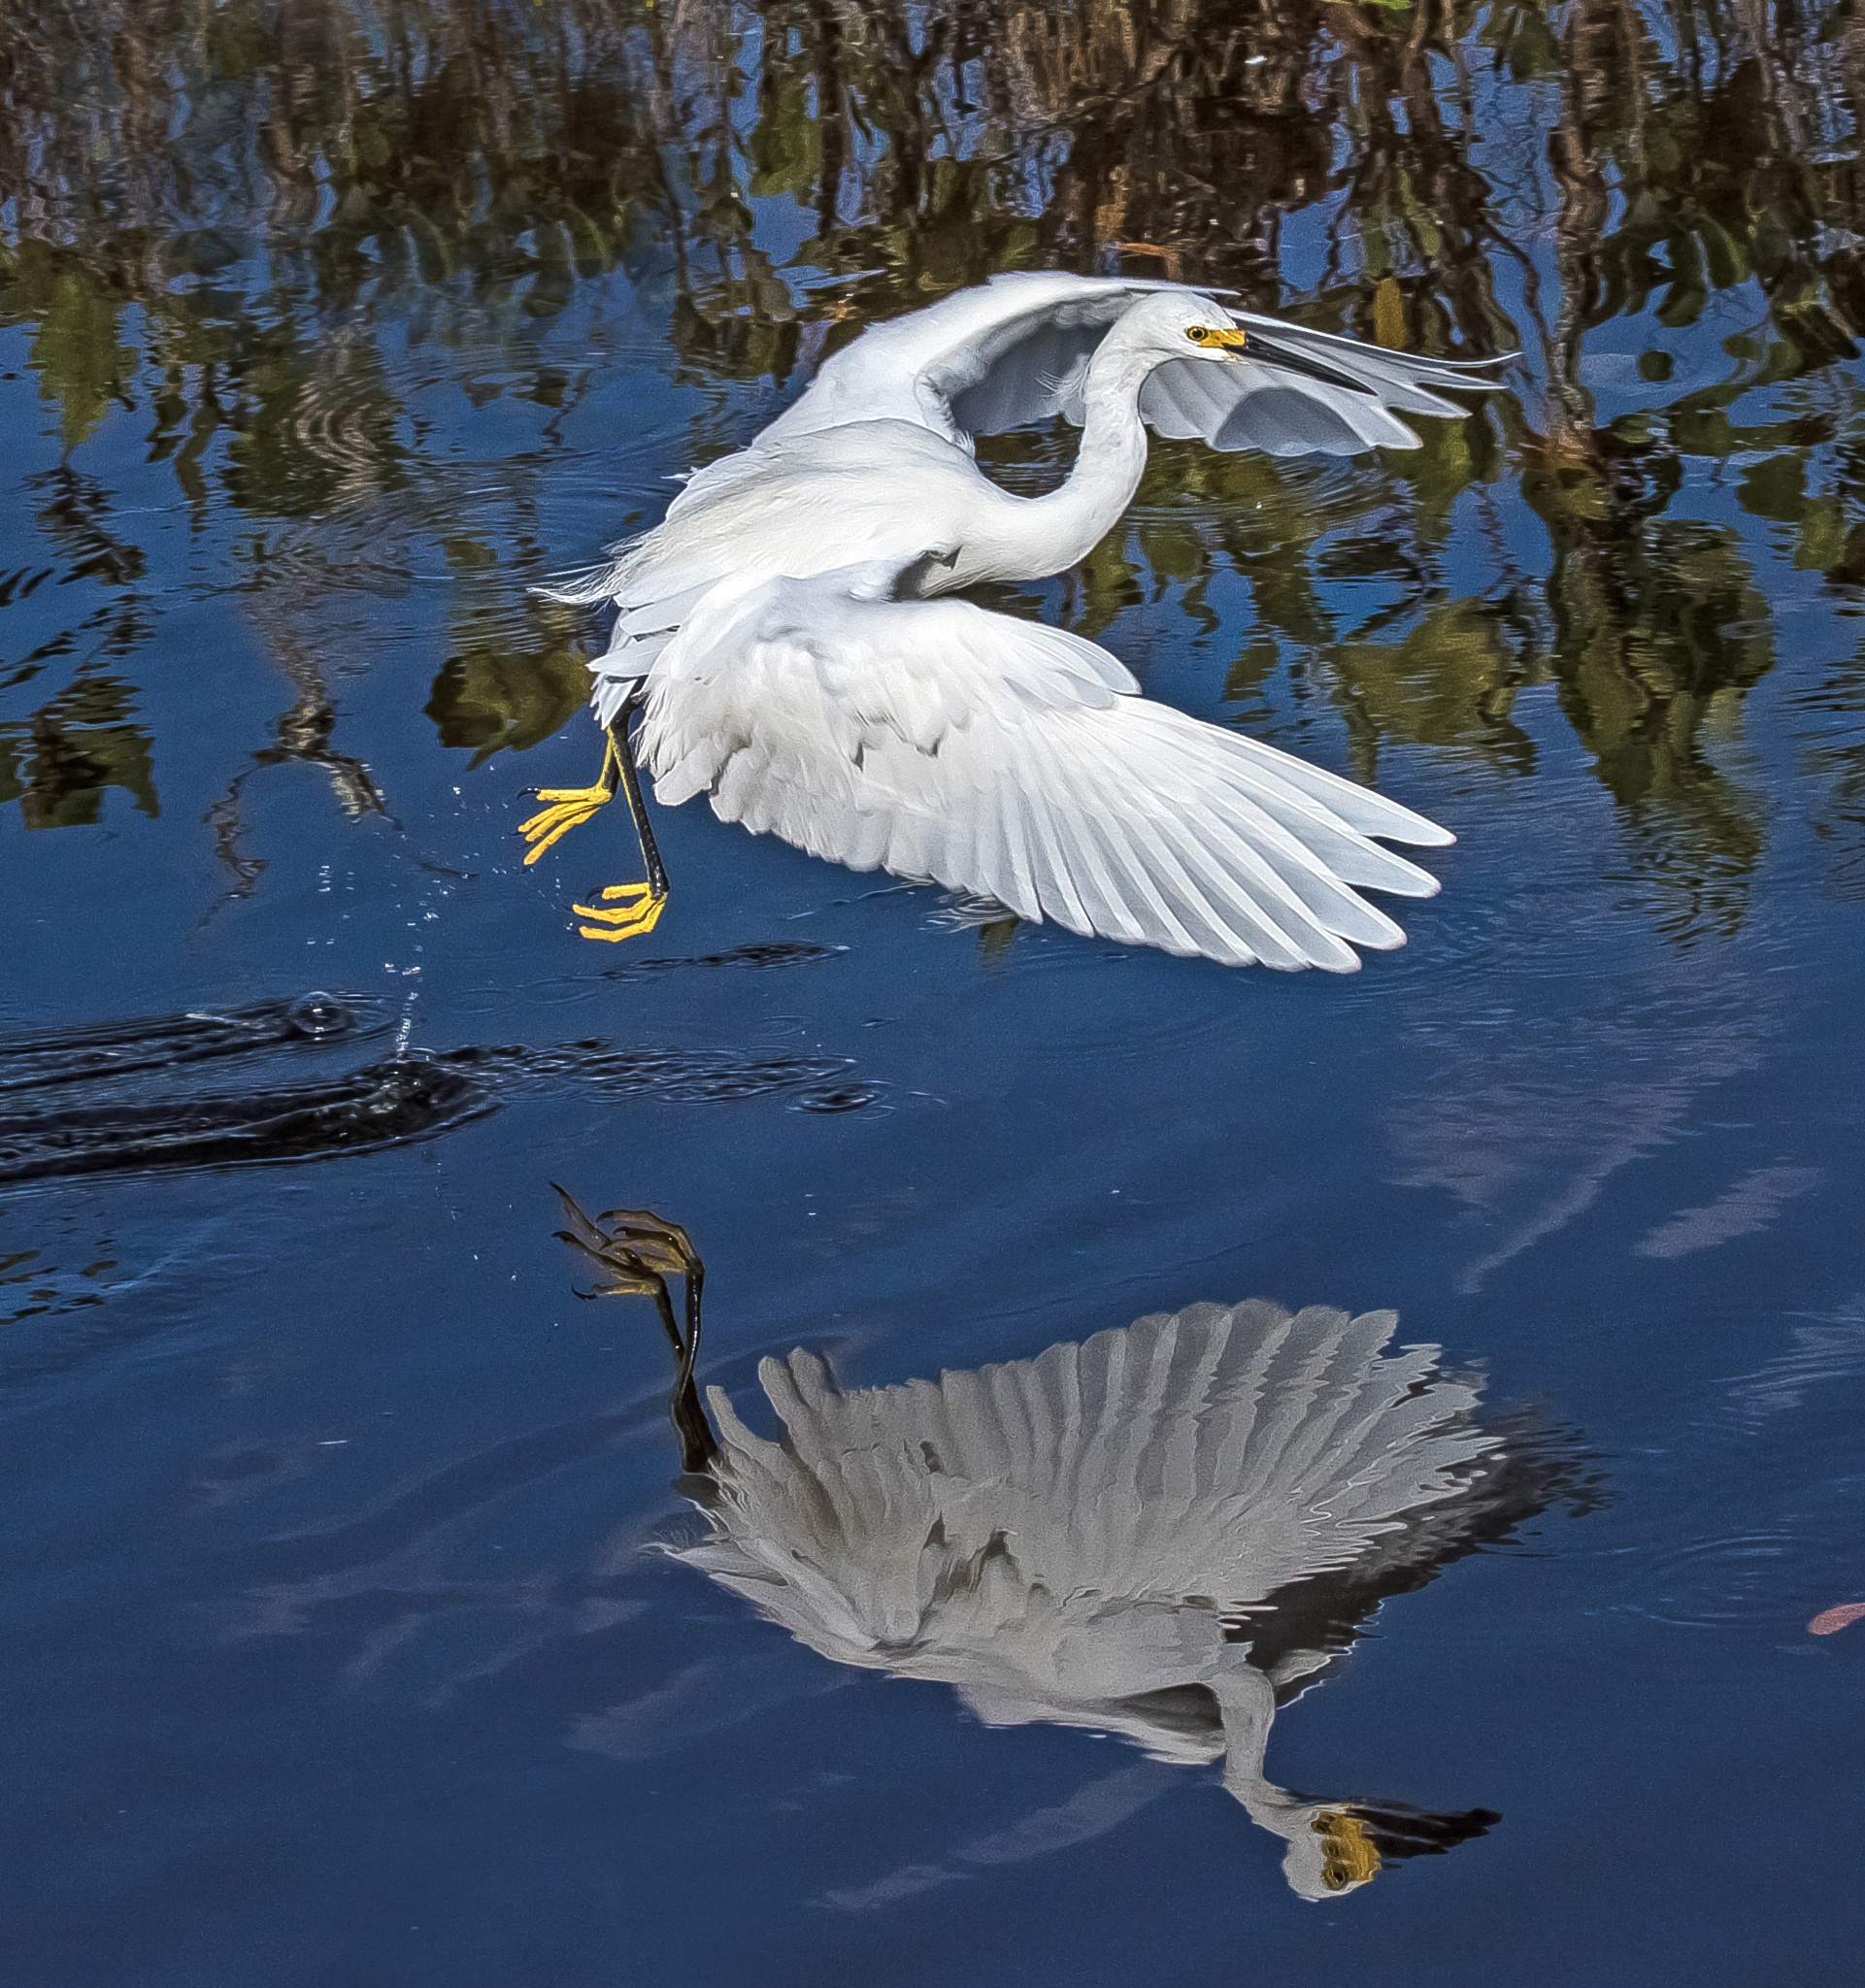 Snowy Egret Reflection by Barry Melamed